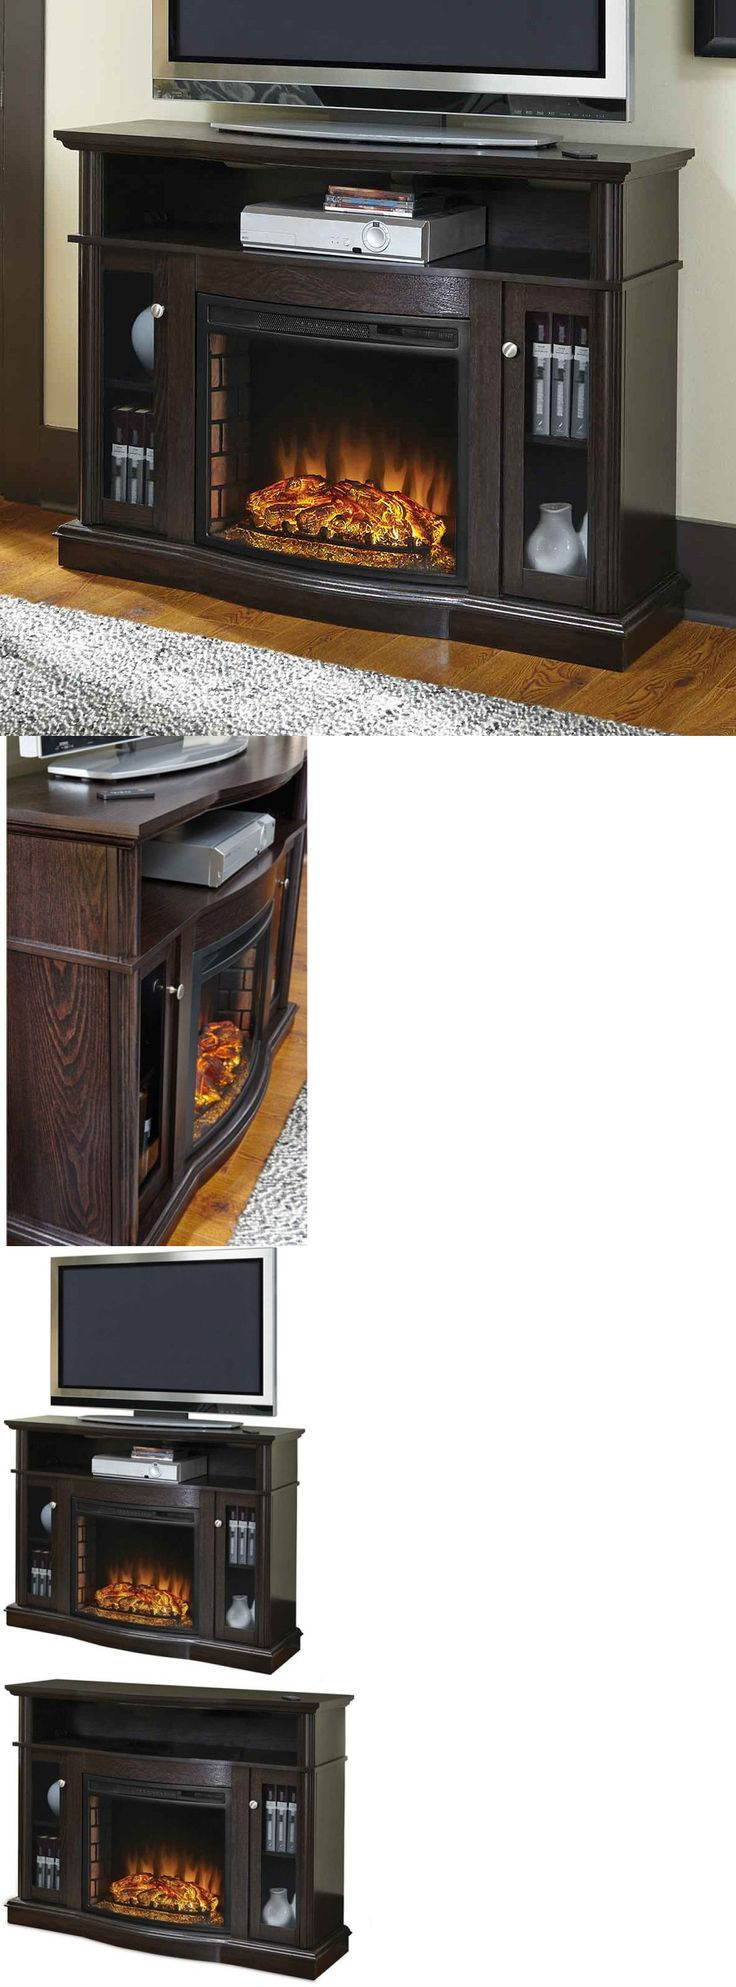 Fireplaces 175756: Electric Fireplace Tv Stand Media Console Heater Entertainment Center Wood New -> BUY IT NOW ONLY: $324.99 on eBay!